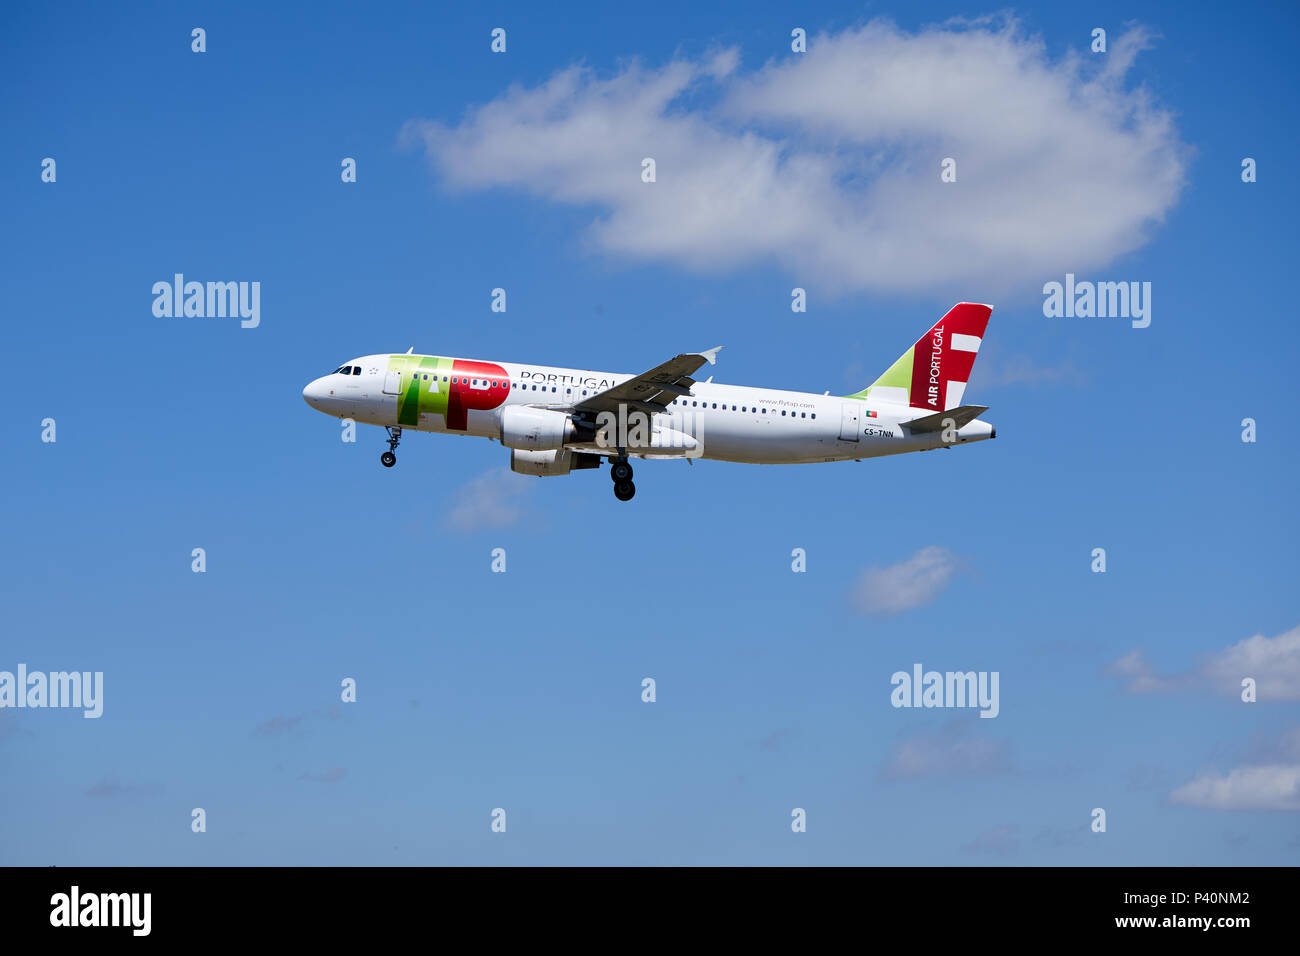 A TAP Air Portugal Airbus A320-214 aircraft, registration number CS-TNN, approaching a landing. - Stock Image